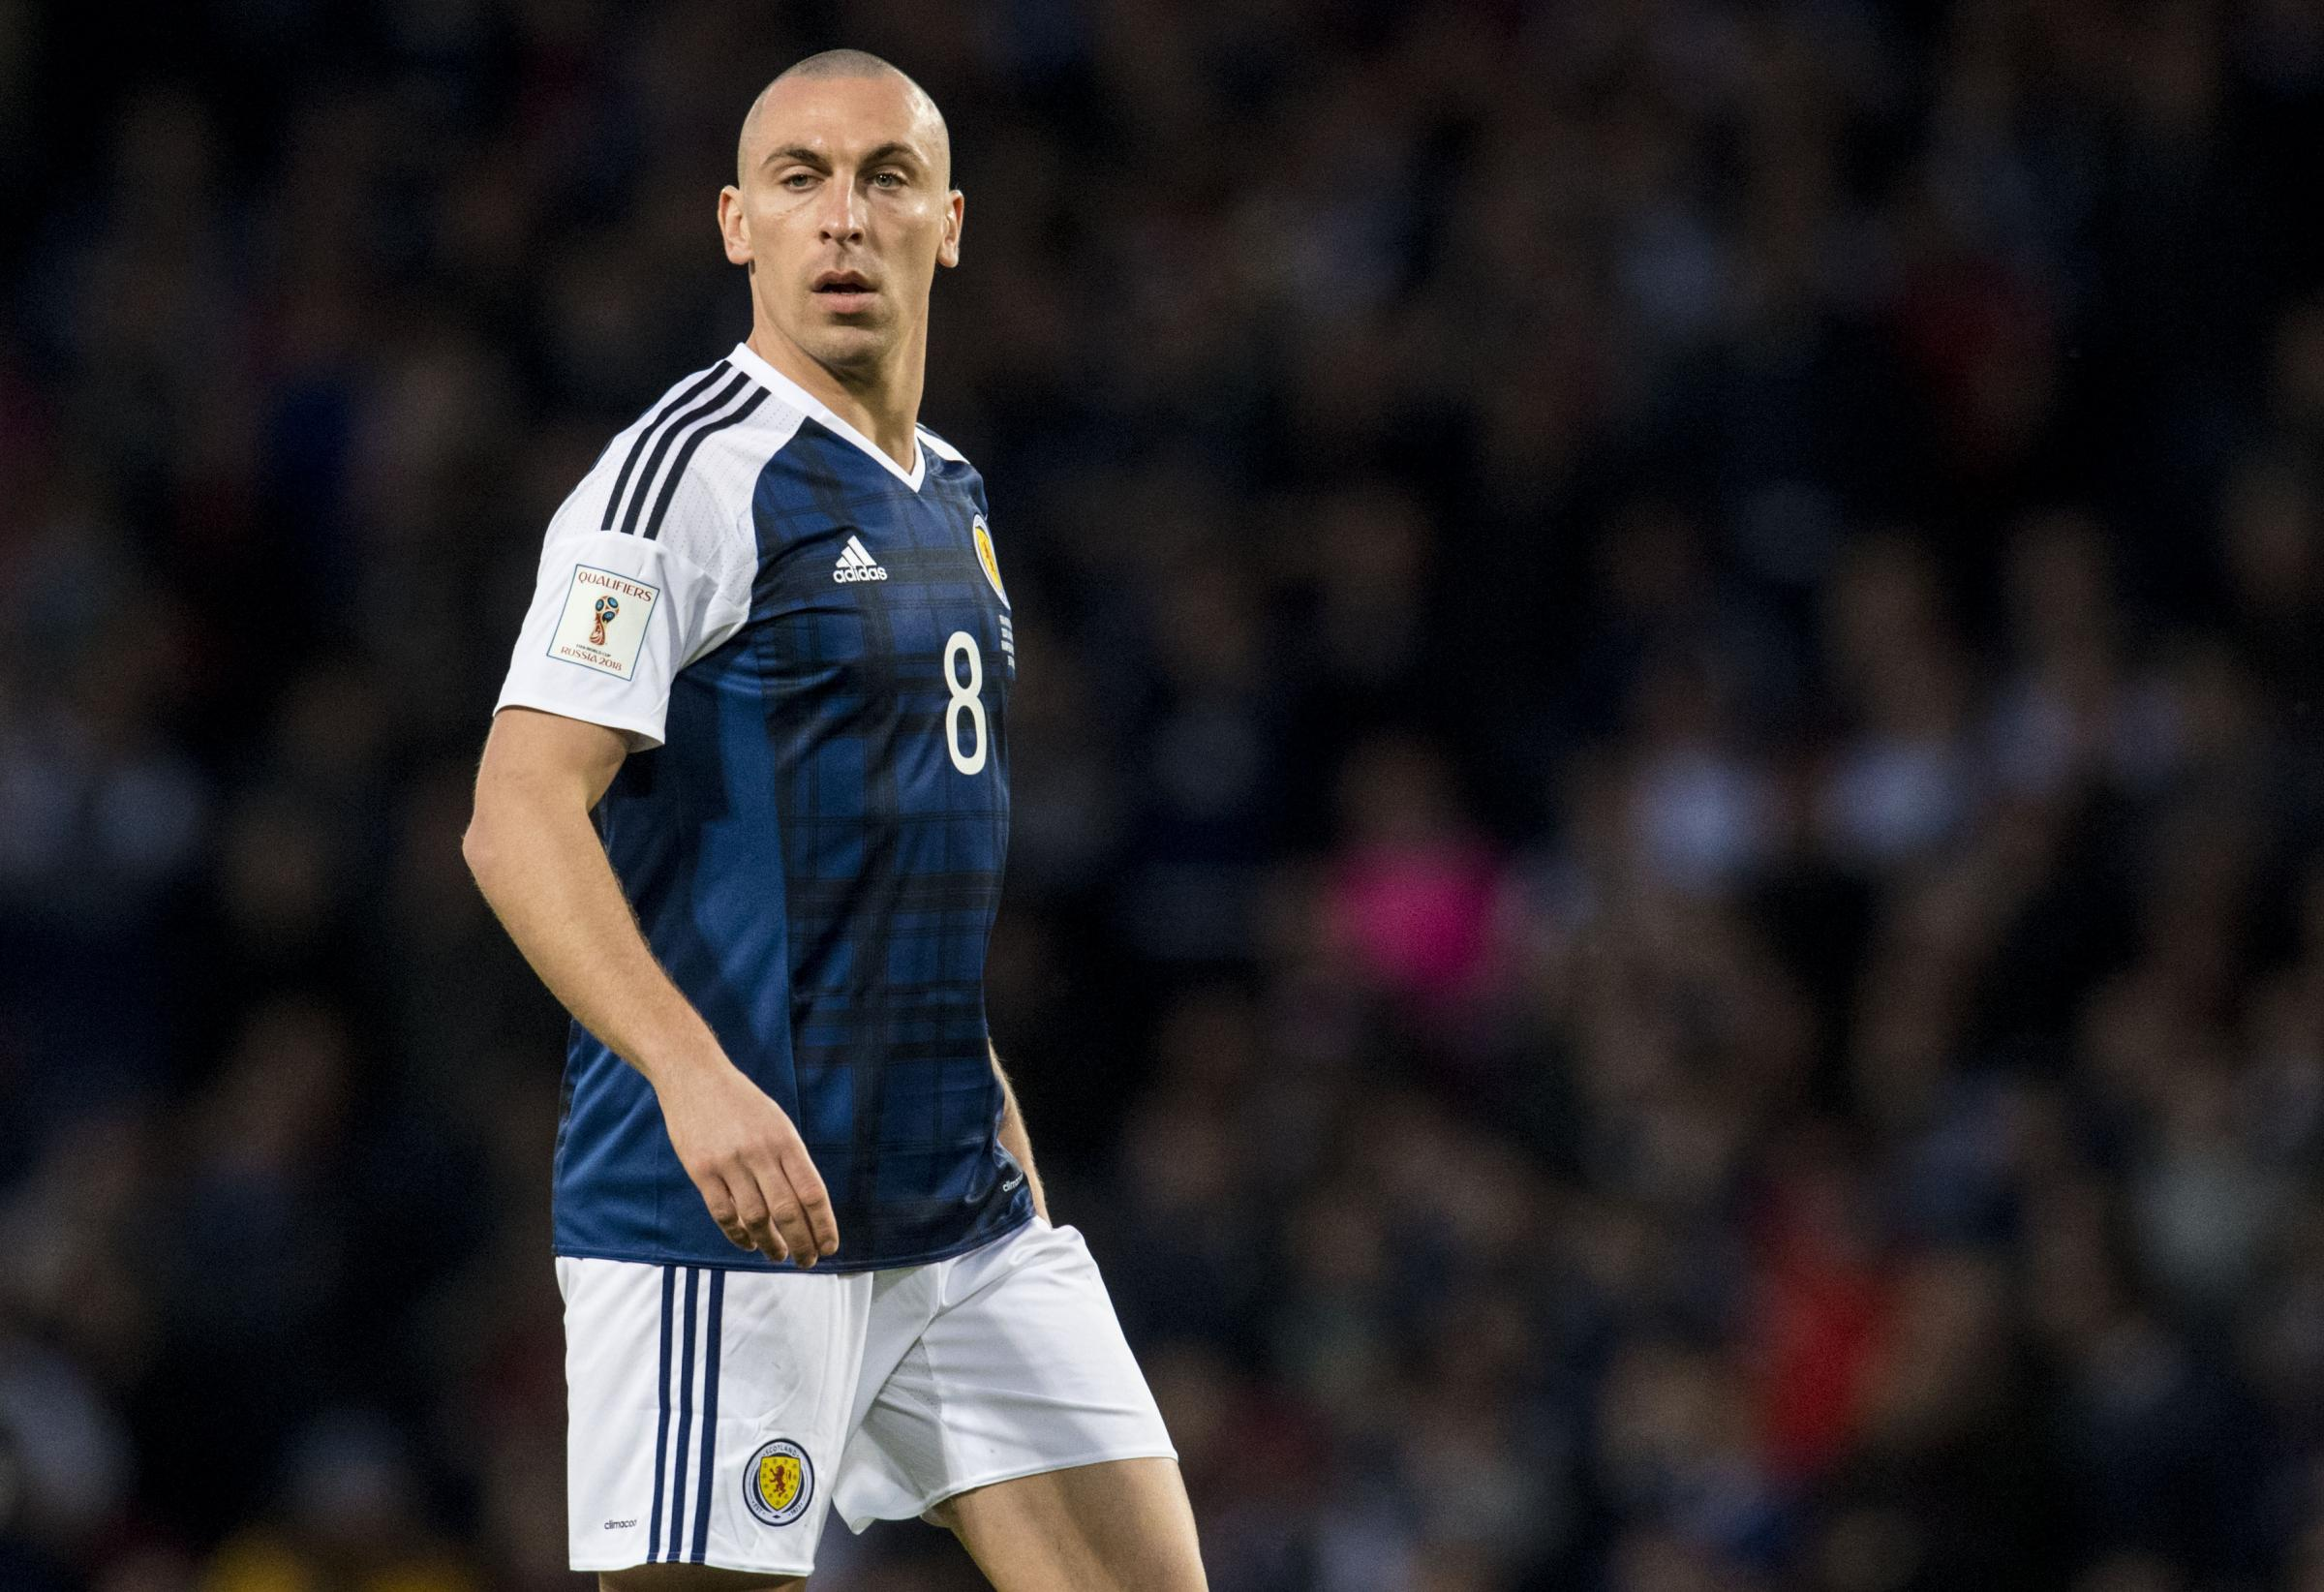 Should Scotland allow Celtic captain Scott Brown to pick and choose when he plays?